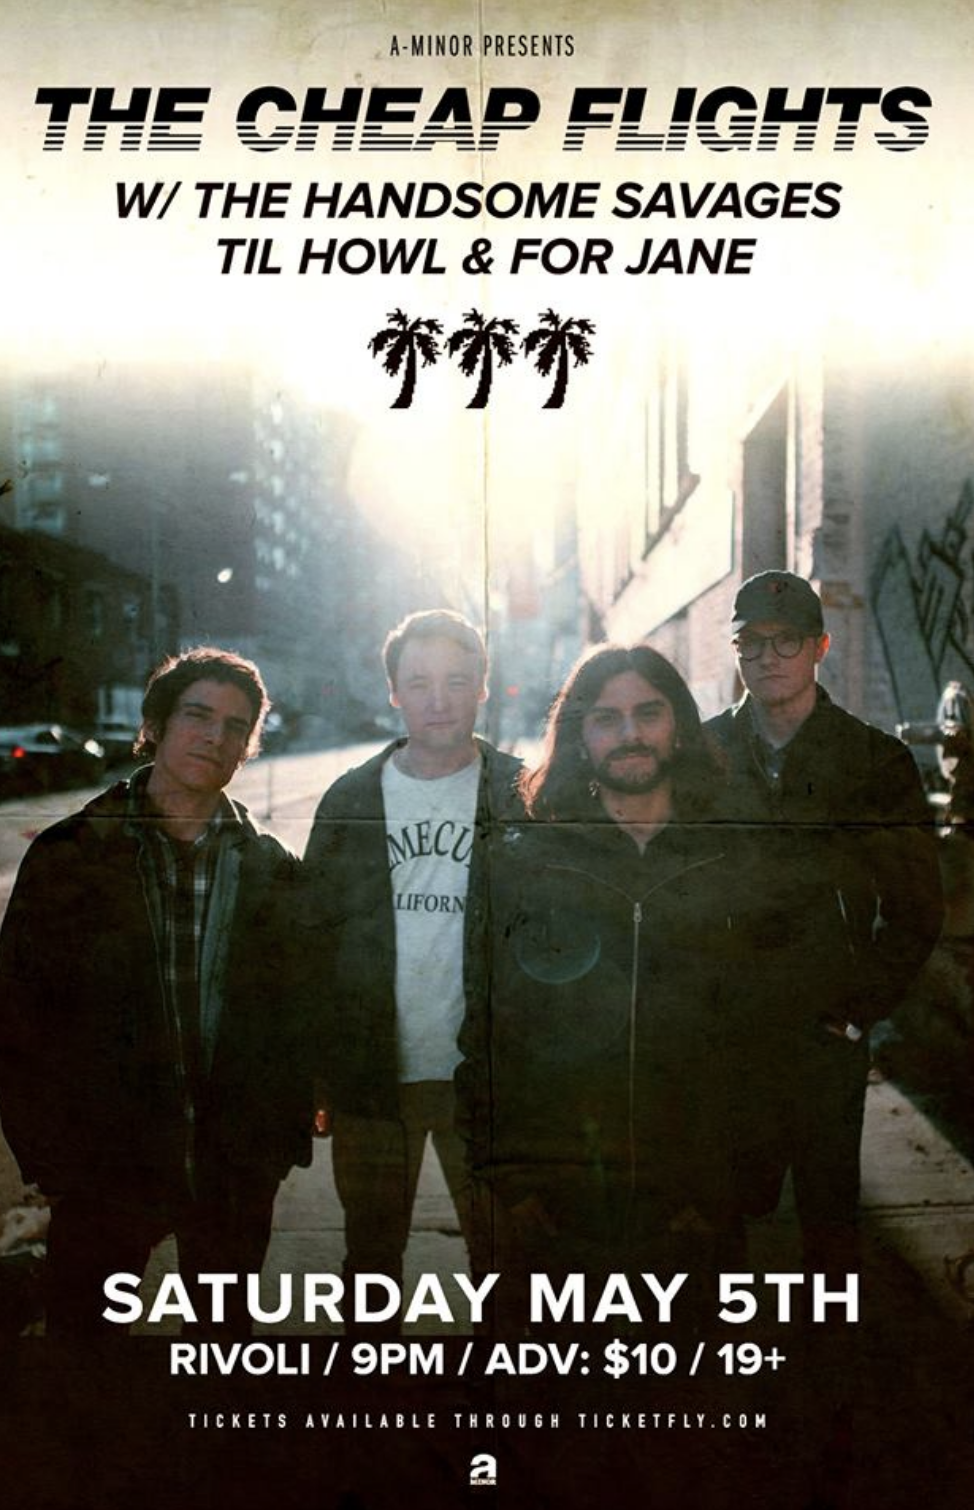 THE CHEAP FLIGHTSw/ The Handsome Savages, Til Howl & For Jane - COVER: $10 ADV / $12 DOORMORE INFO